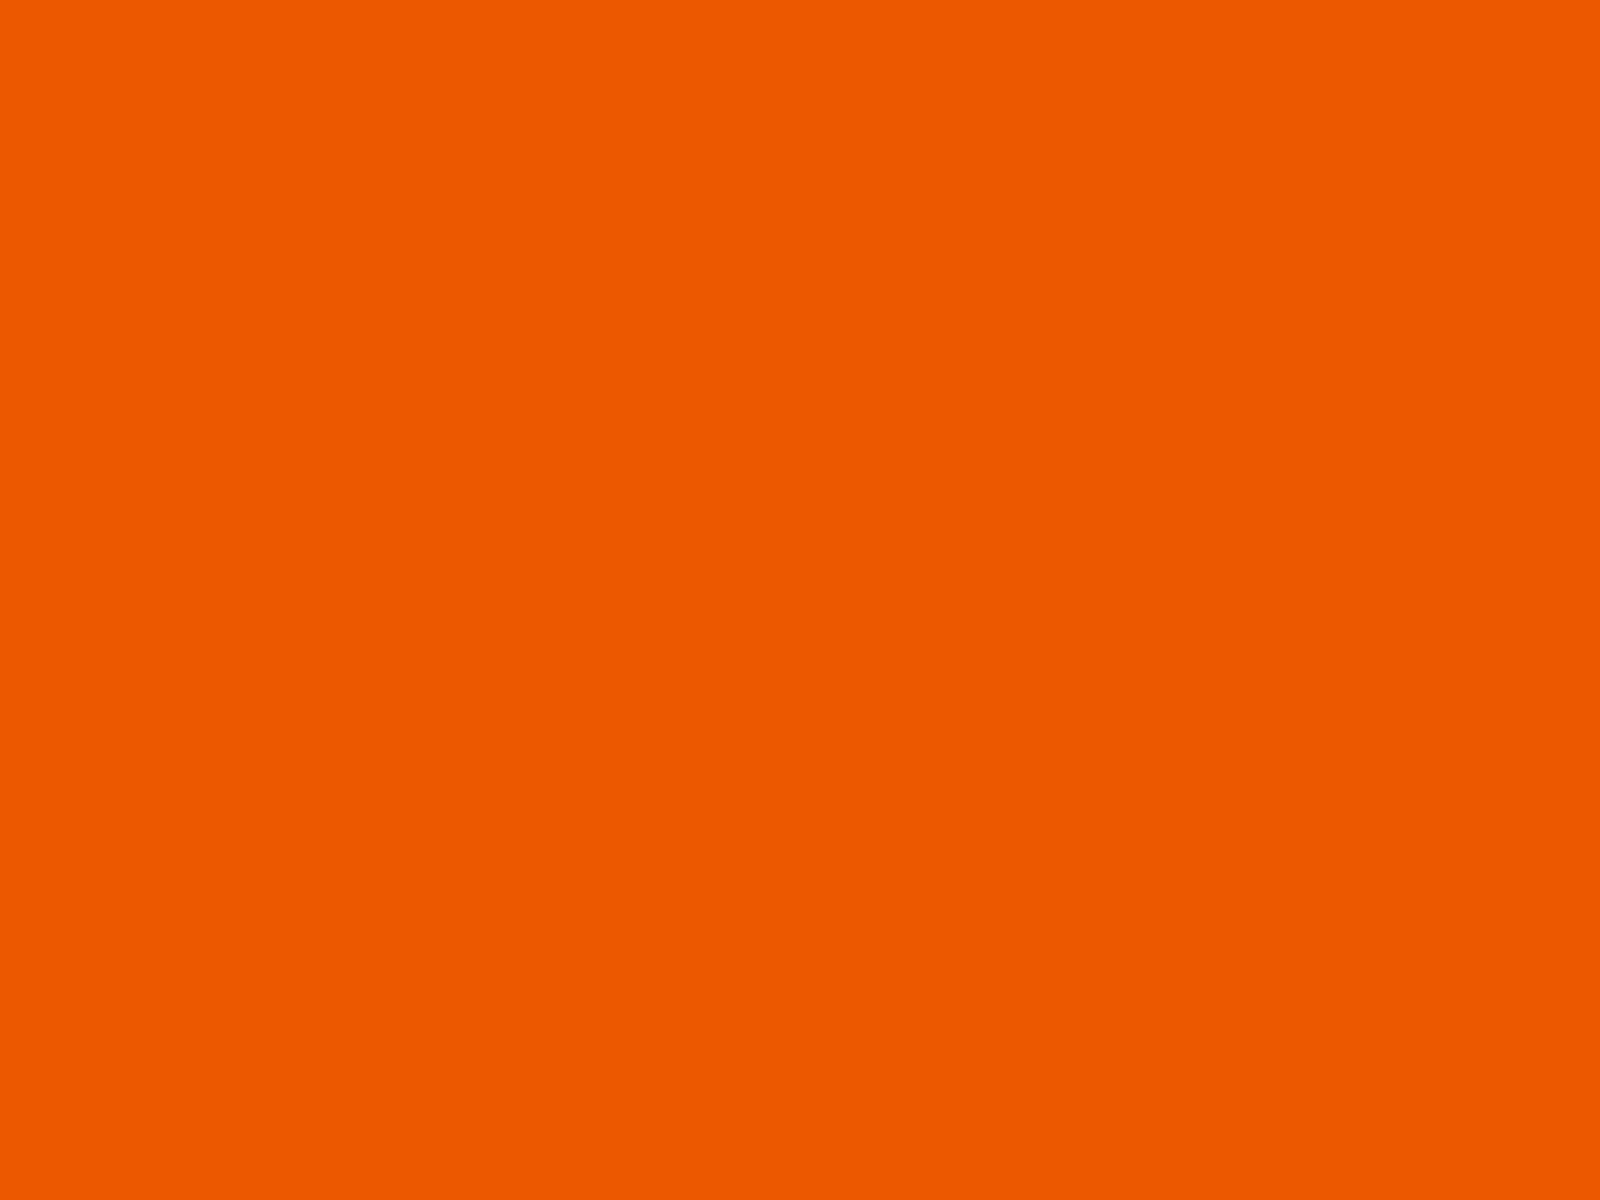 1600x1200 Persimmon Solid Color Background